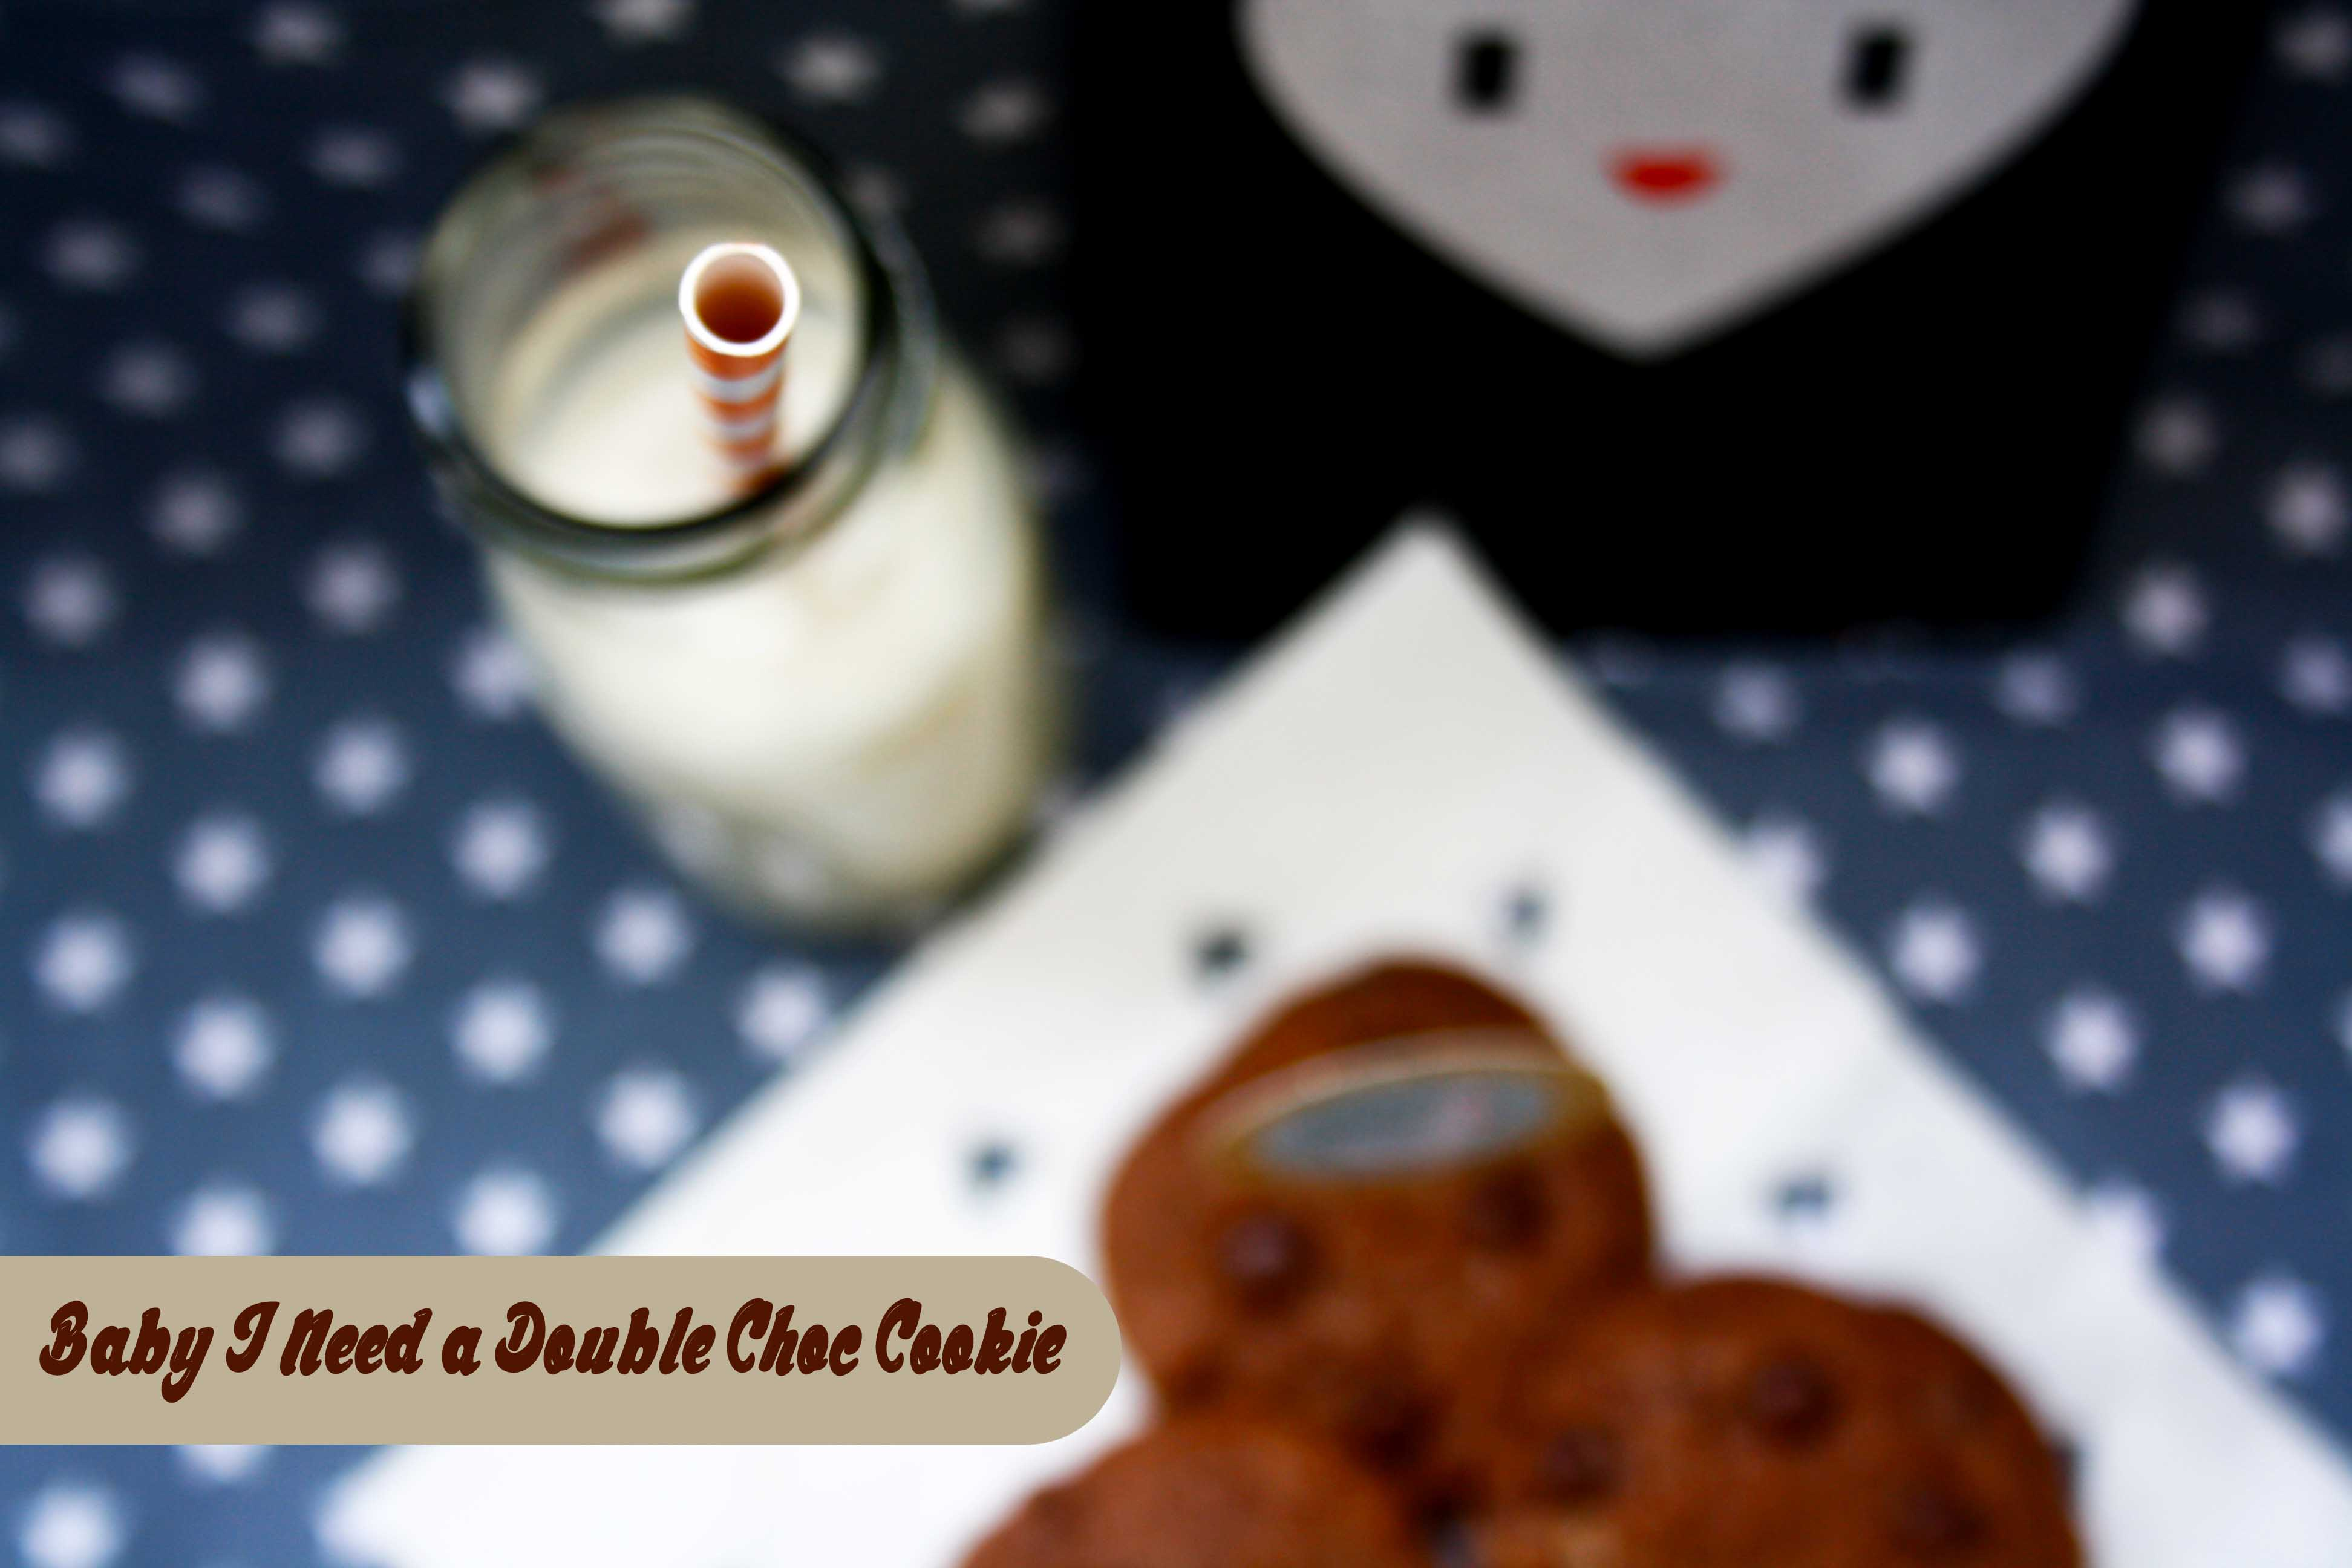 Double Choc Cookies by http://babyrockmyday.com/double-choc-cookies/